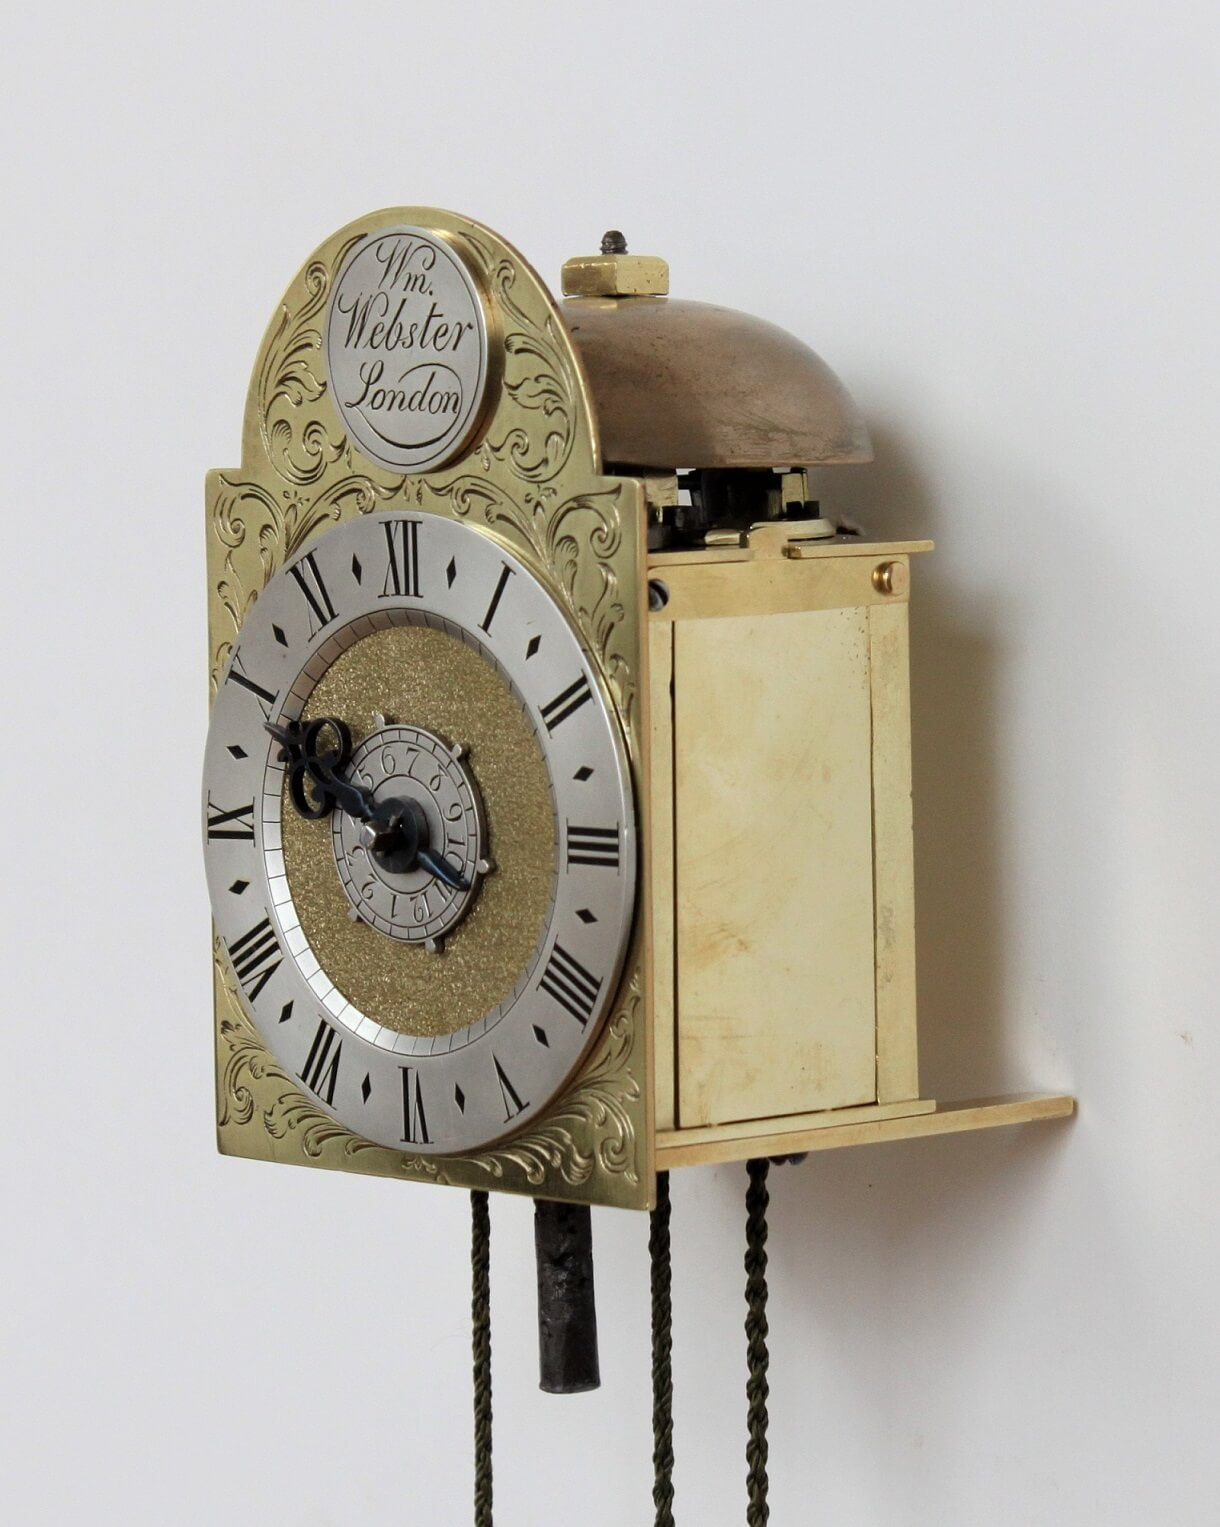 English-small-brass-alarm-travel-lantern-antique-wall-clock-william-webster-london-